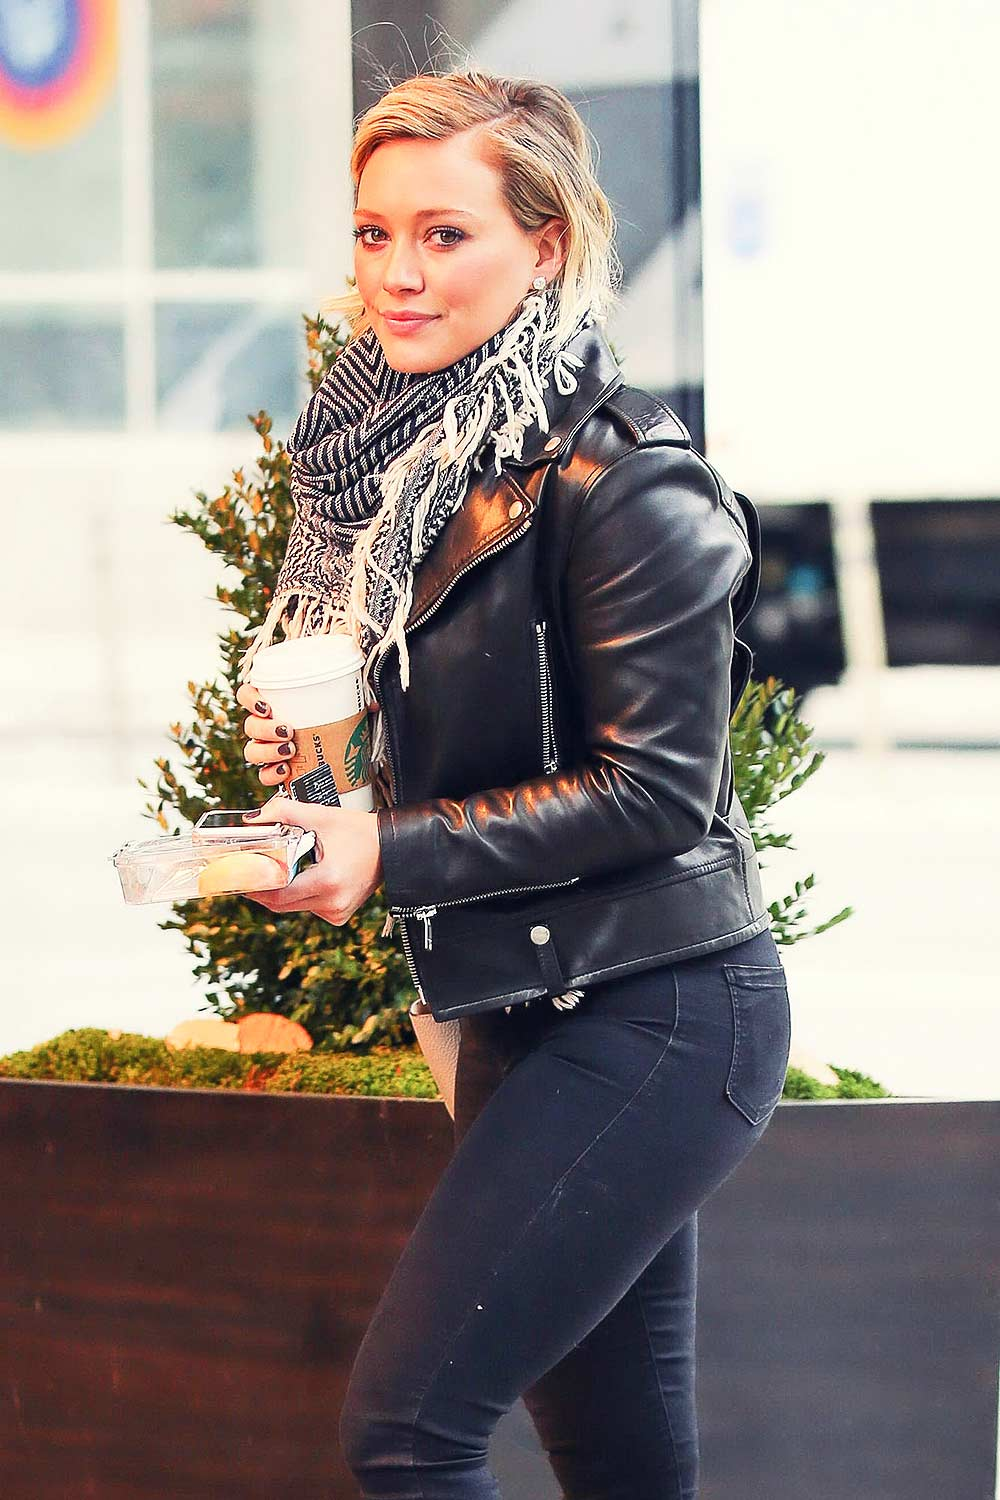 Hilary Duff at her Hotel in NYC